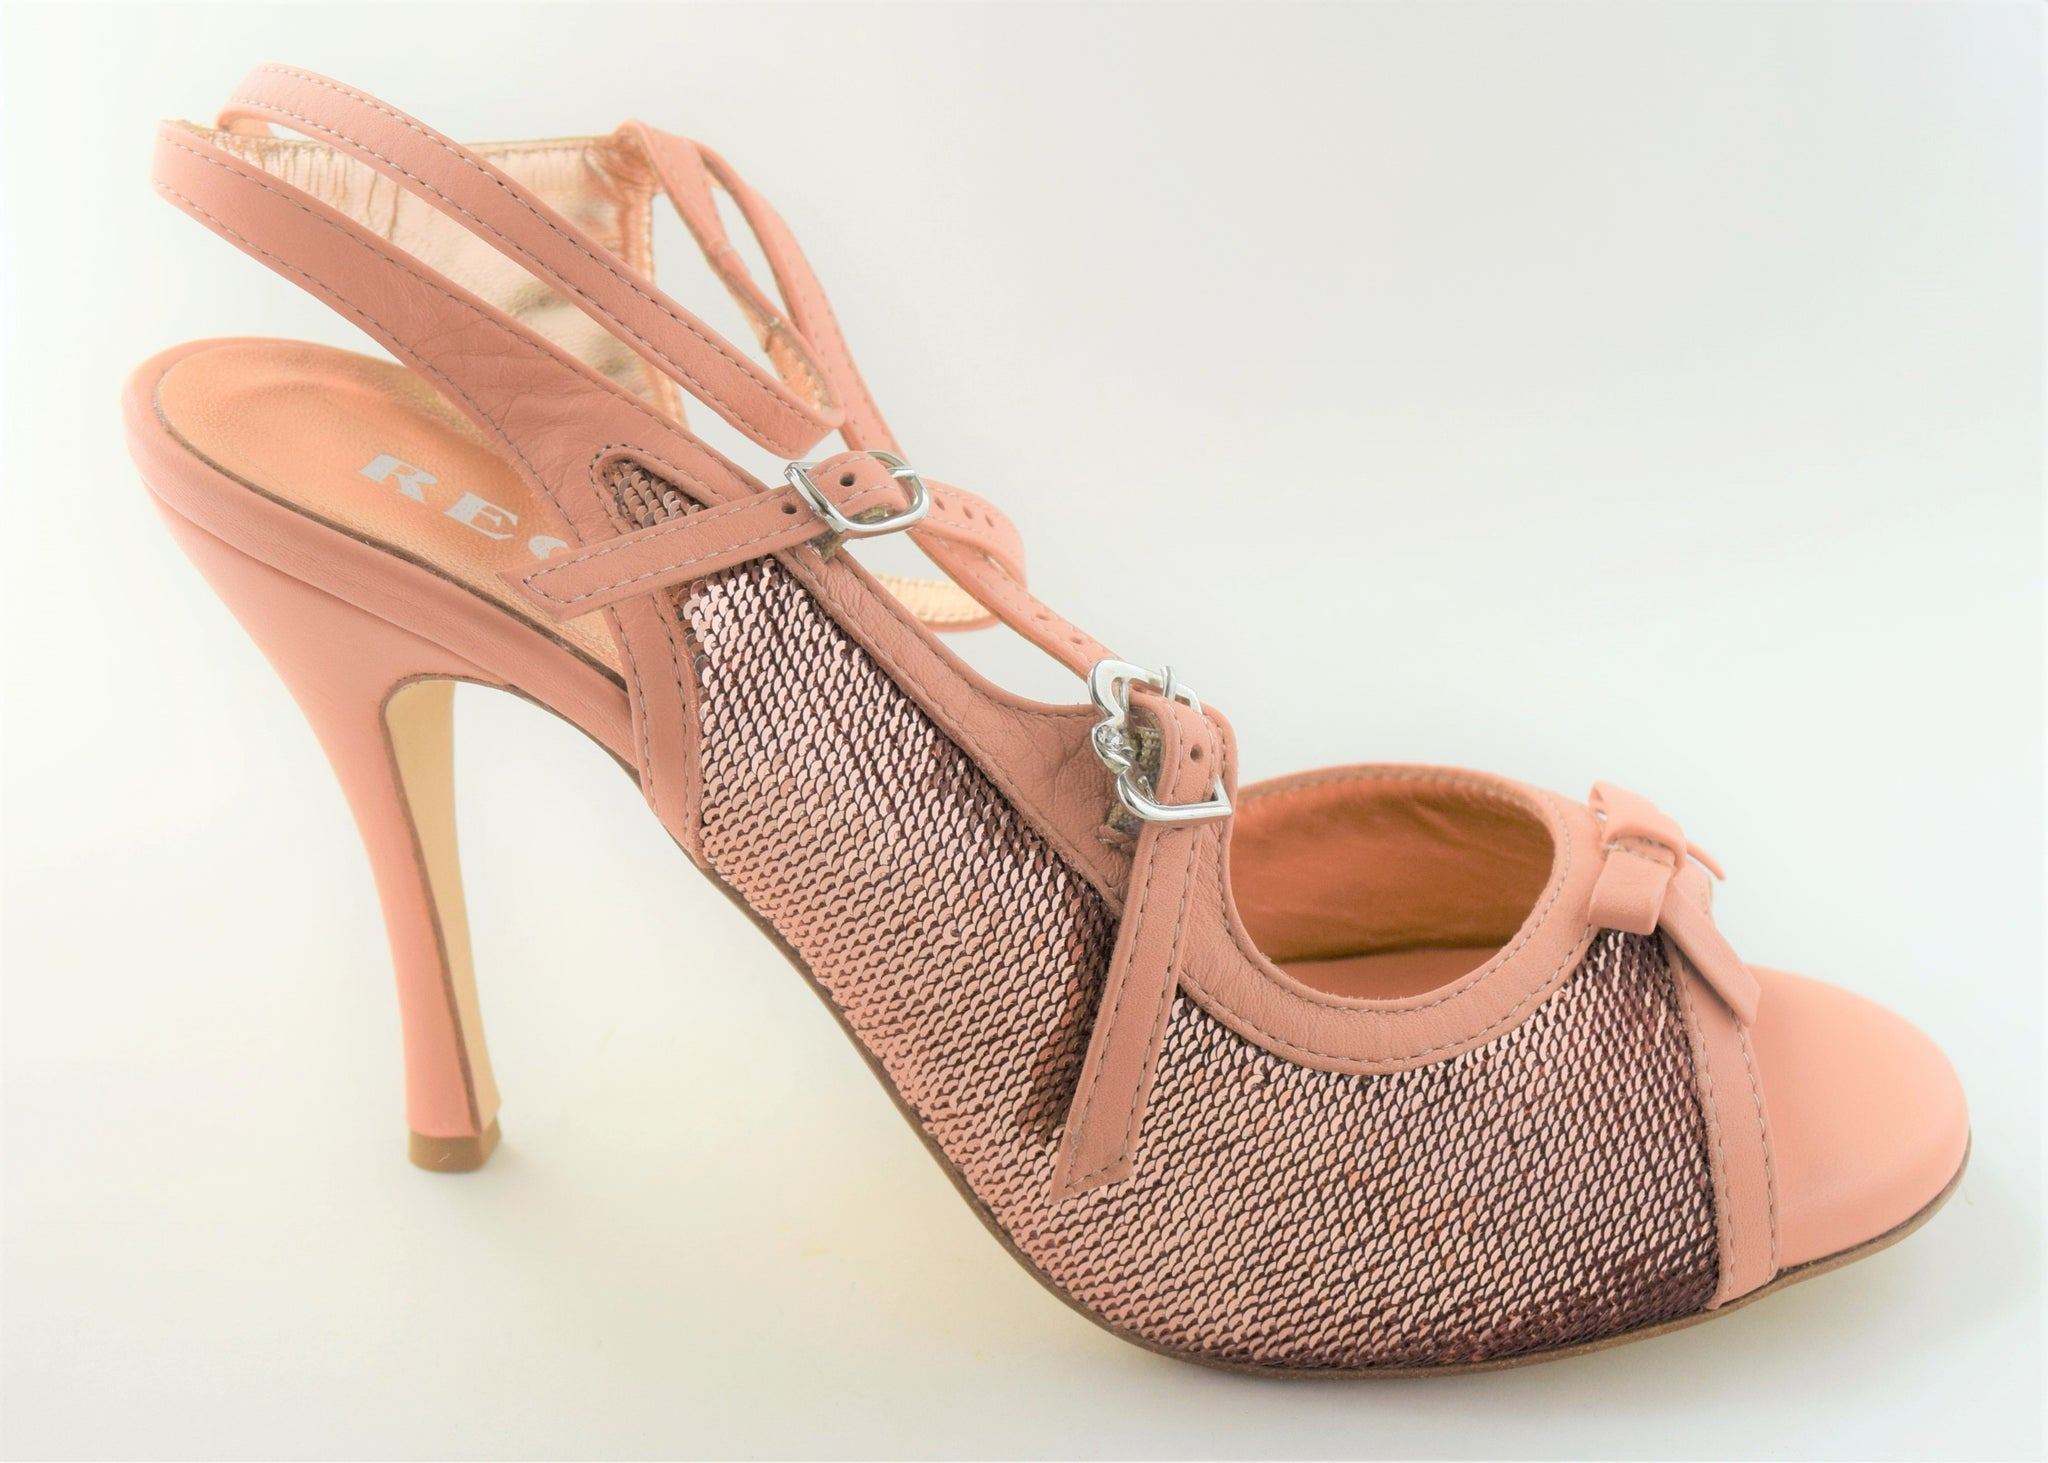 Size 10 - Pigalle in Rose Gold Sequins with Peachy Pink Leather Outlines - Regina